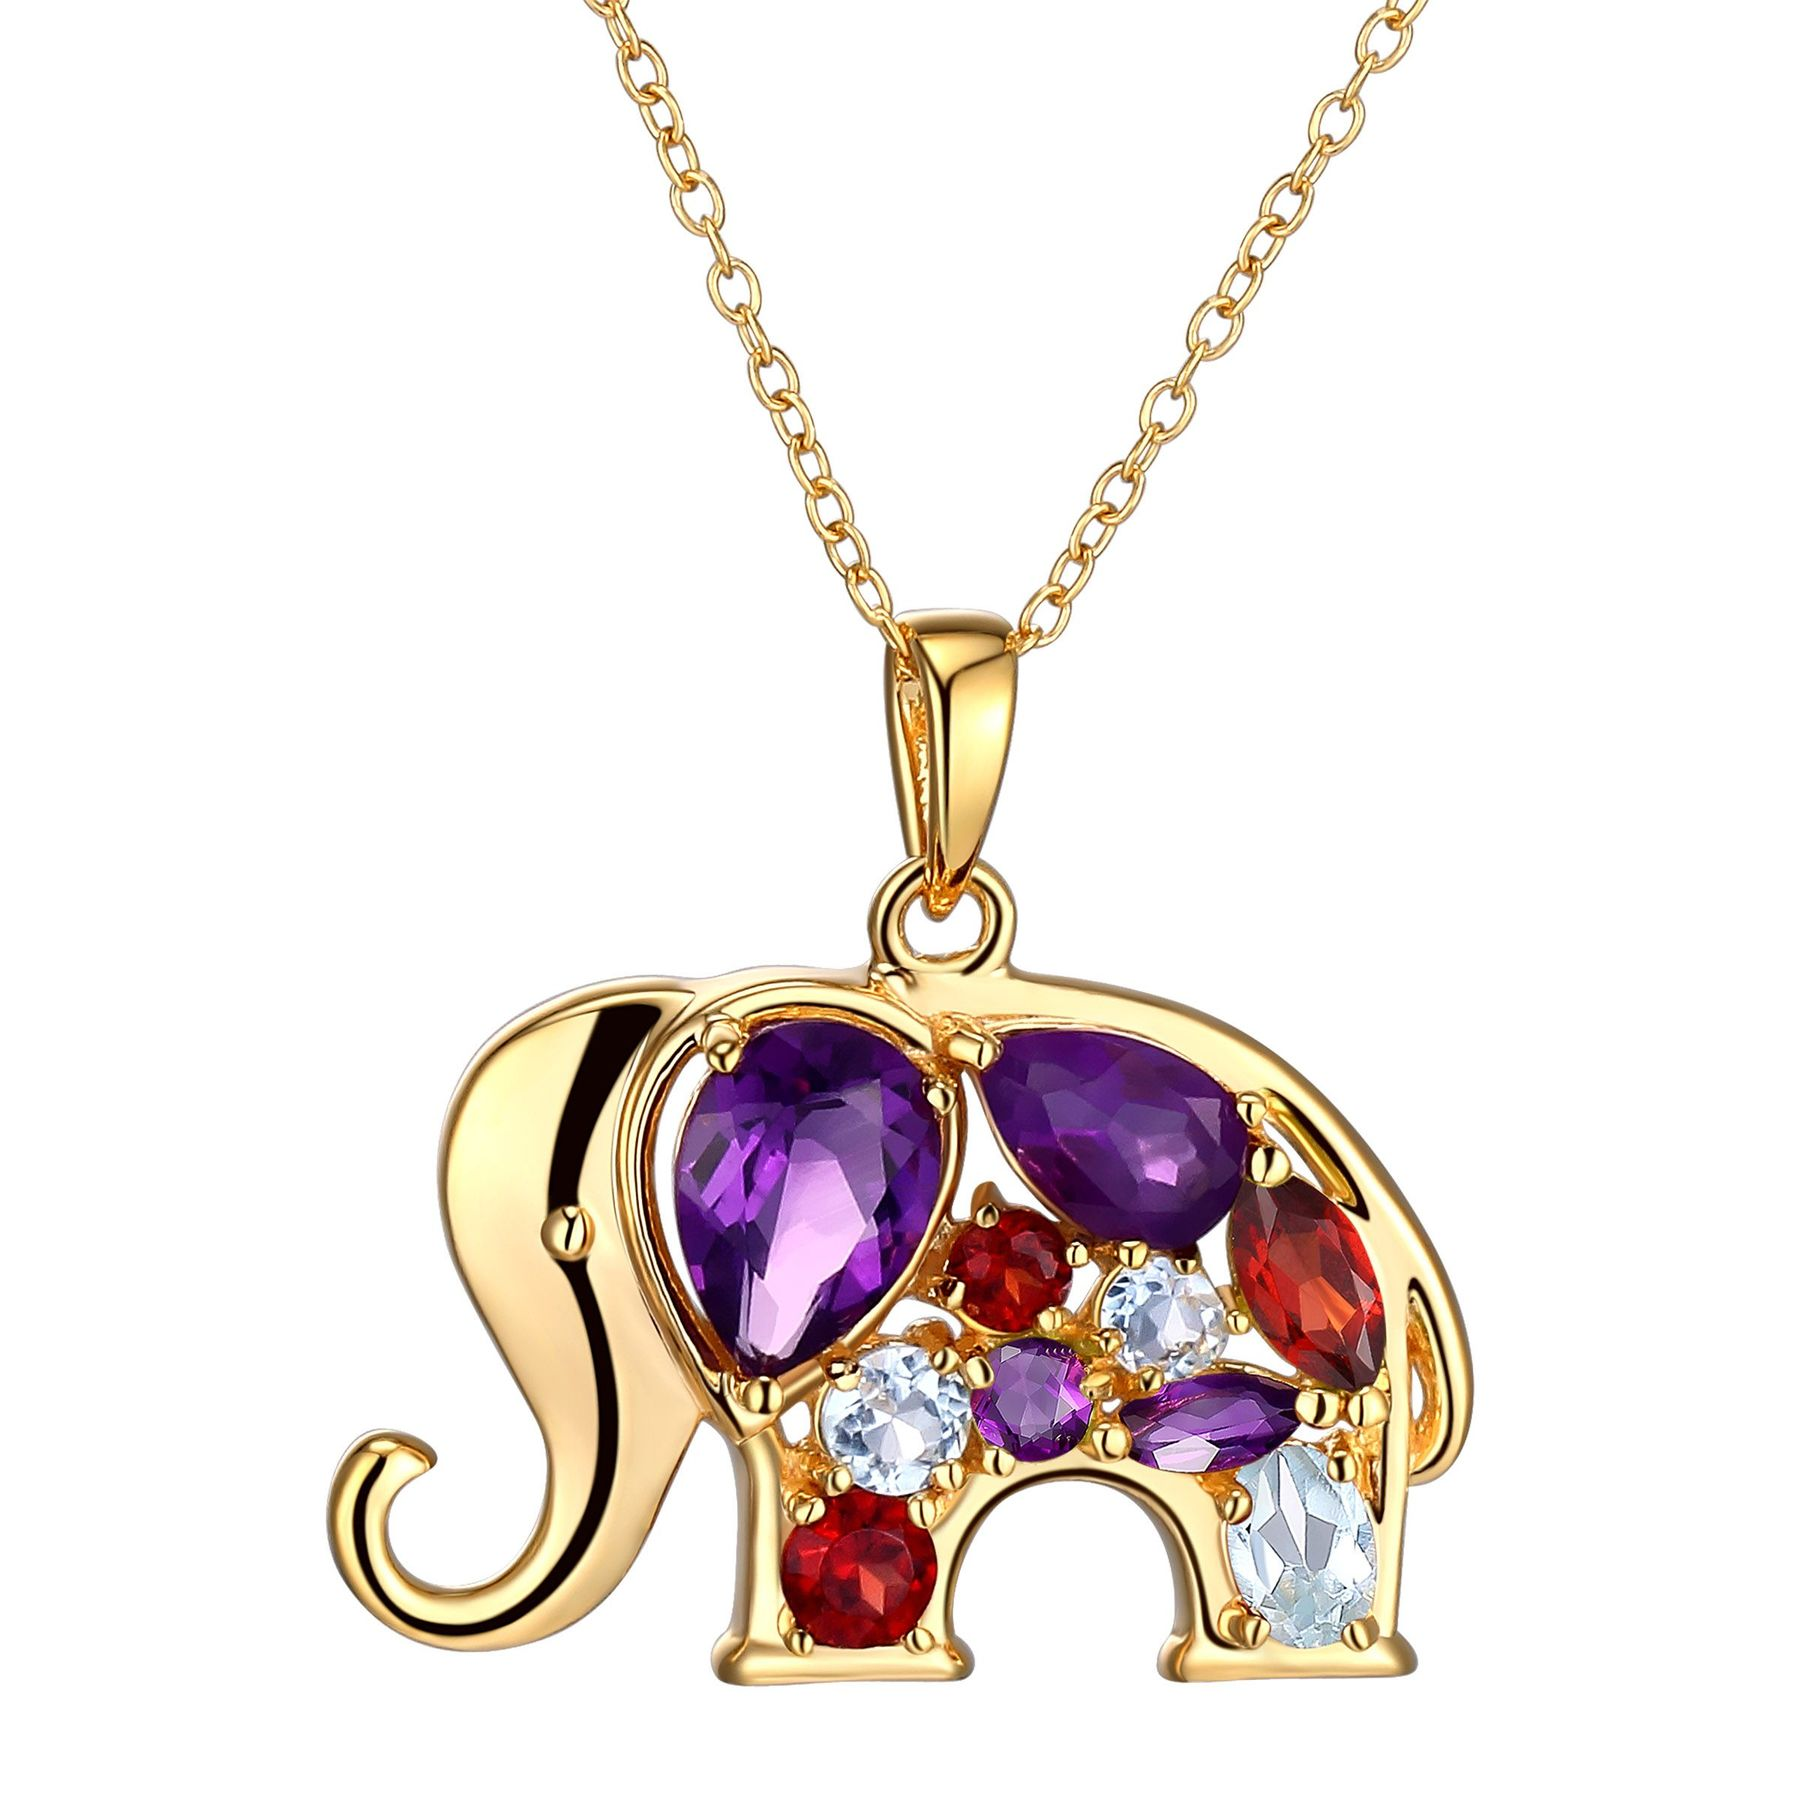 steel everyday shop gold jewelry lucky necklace animal plated rose elephant for small stainless jewel eye pendant with necklaces